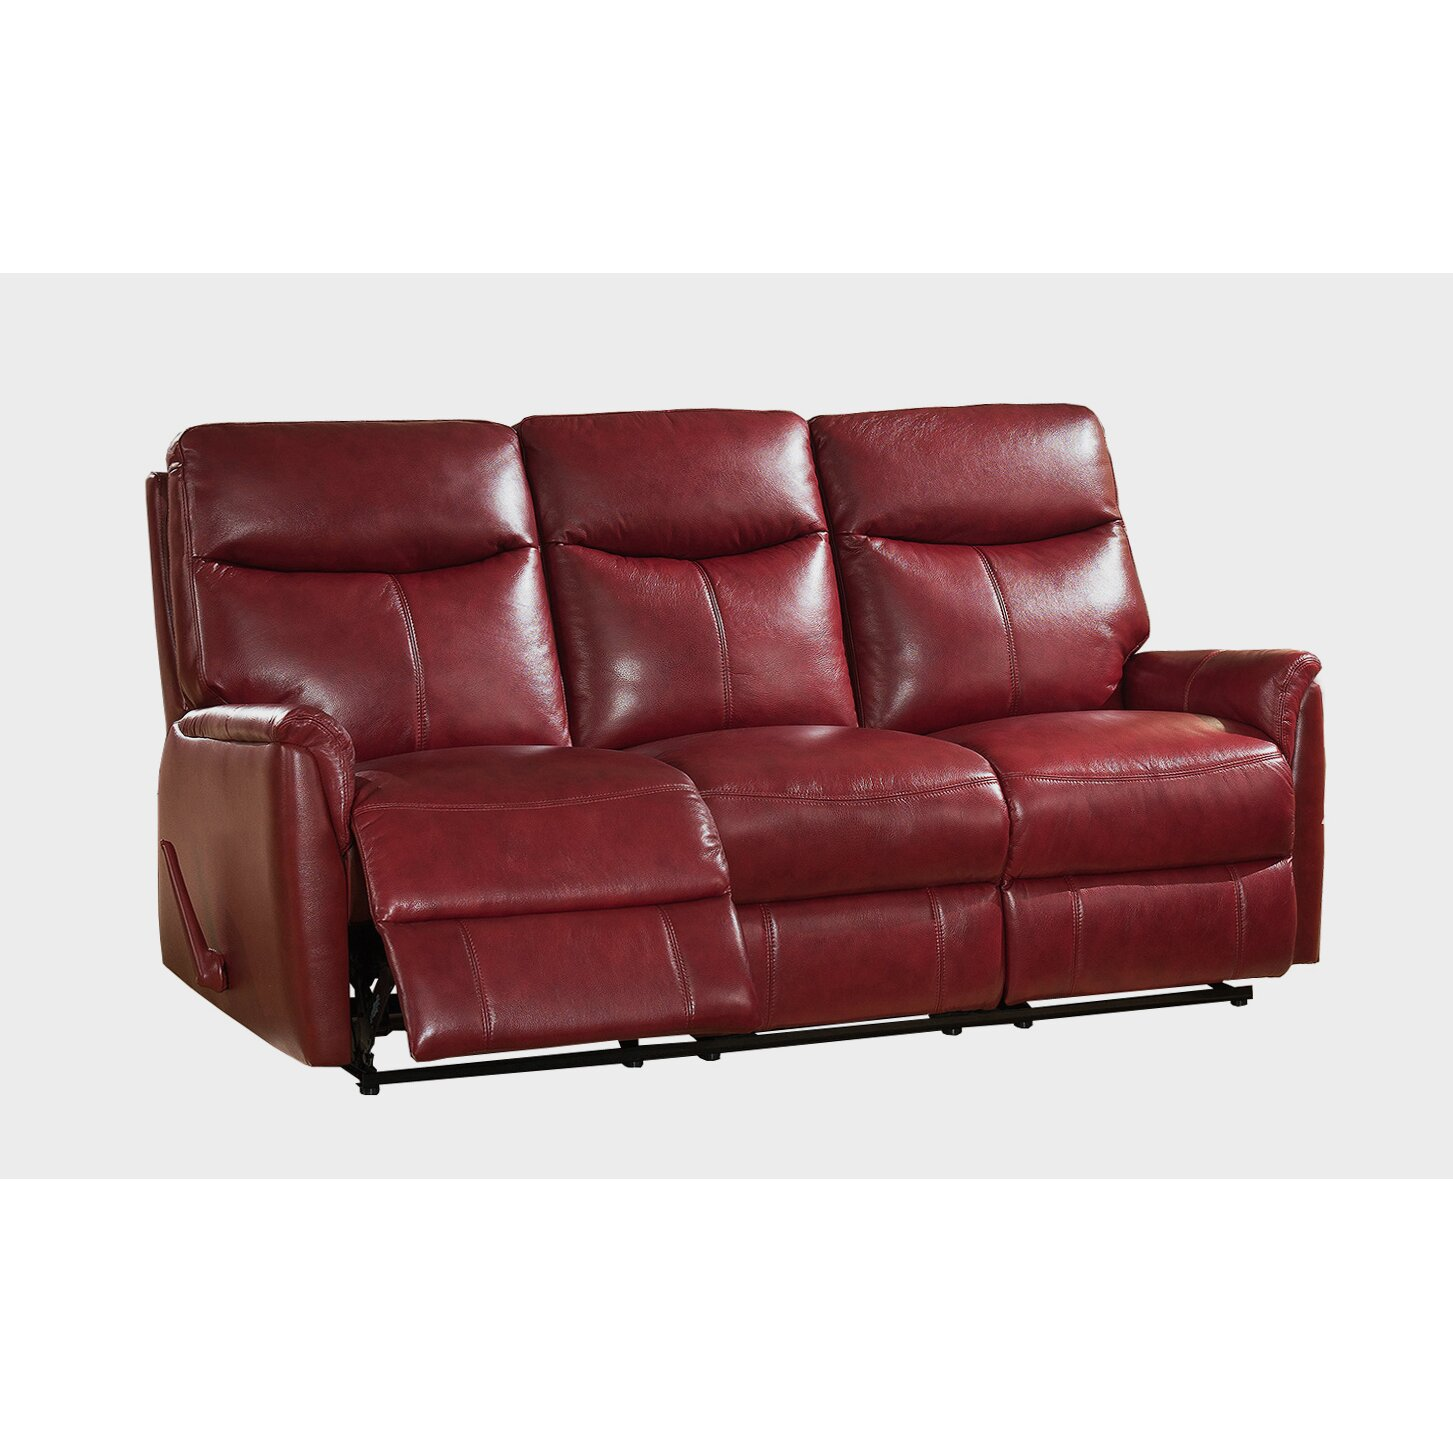 Amax napa top grain leather lay flat reclining sofa and loveseat set wayfair Sofa loveseat